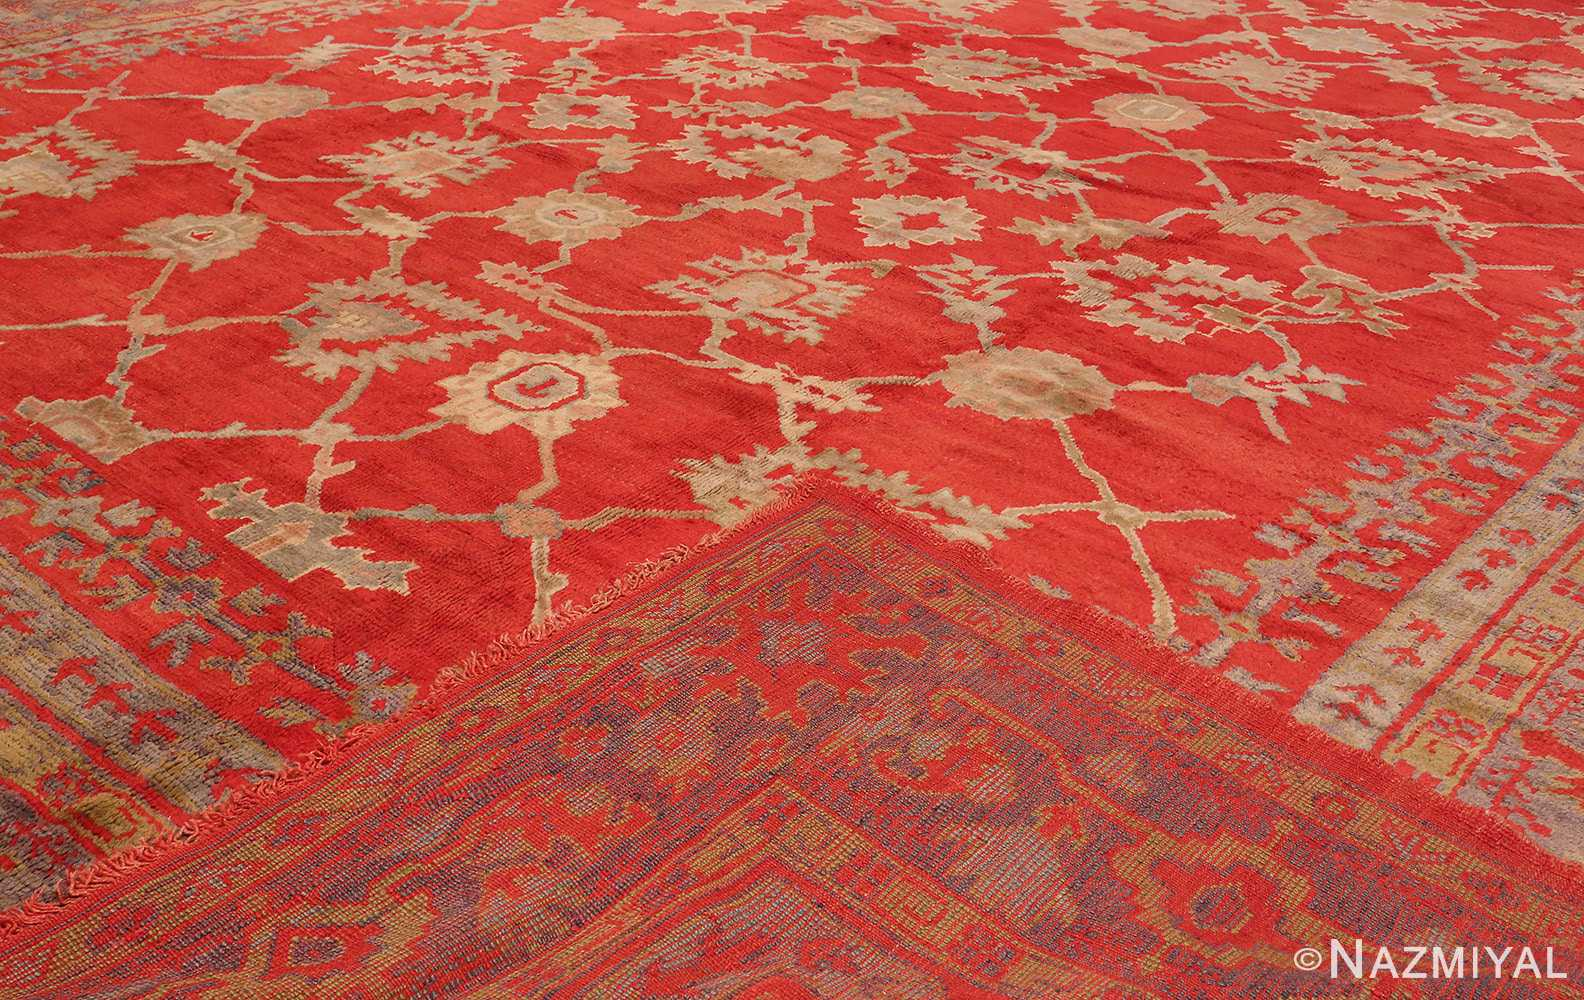 A Full Picture From The Size Of The Large Red Antique Turkish Oushak Rug #70012 From Nazmiyal Antique Rugs in NYC